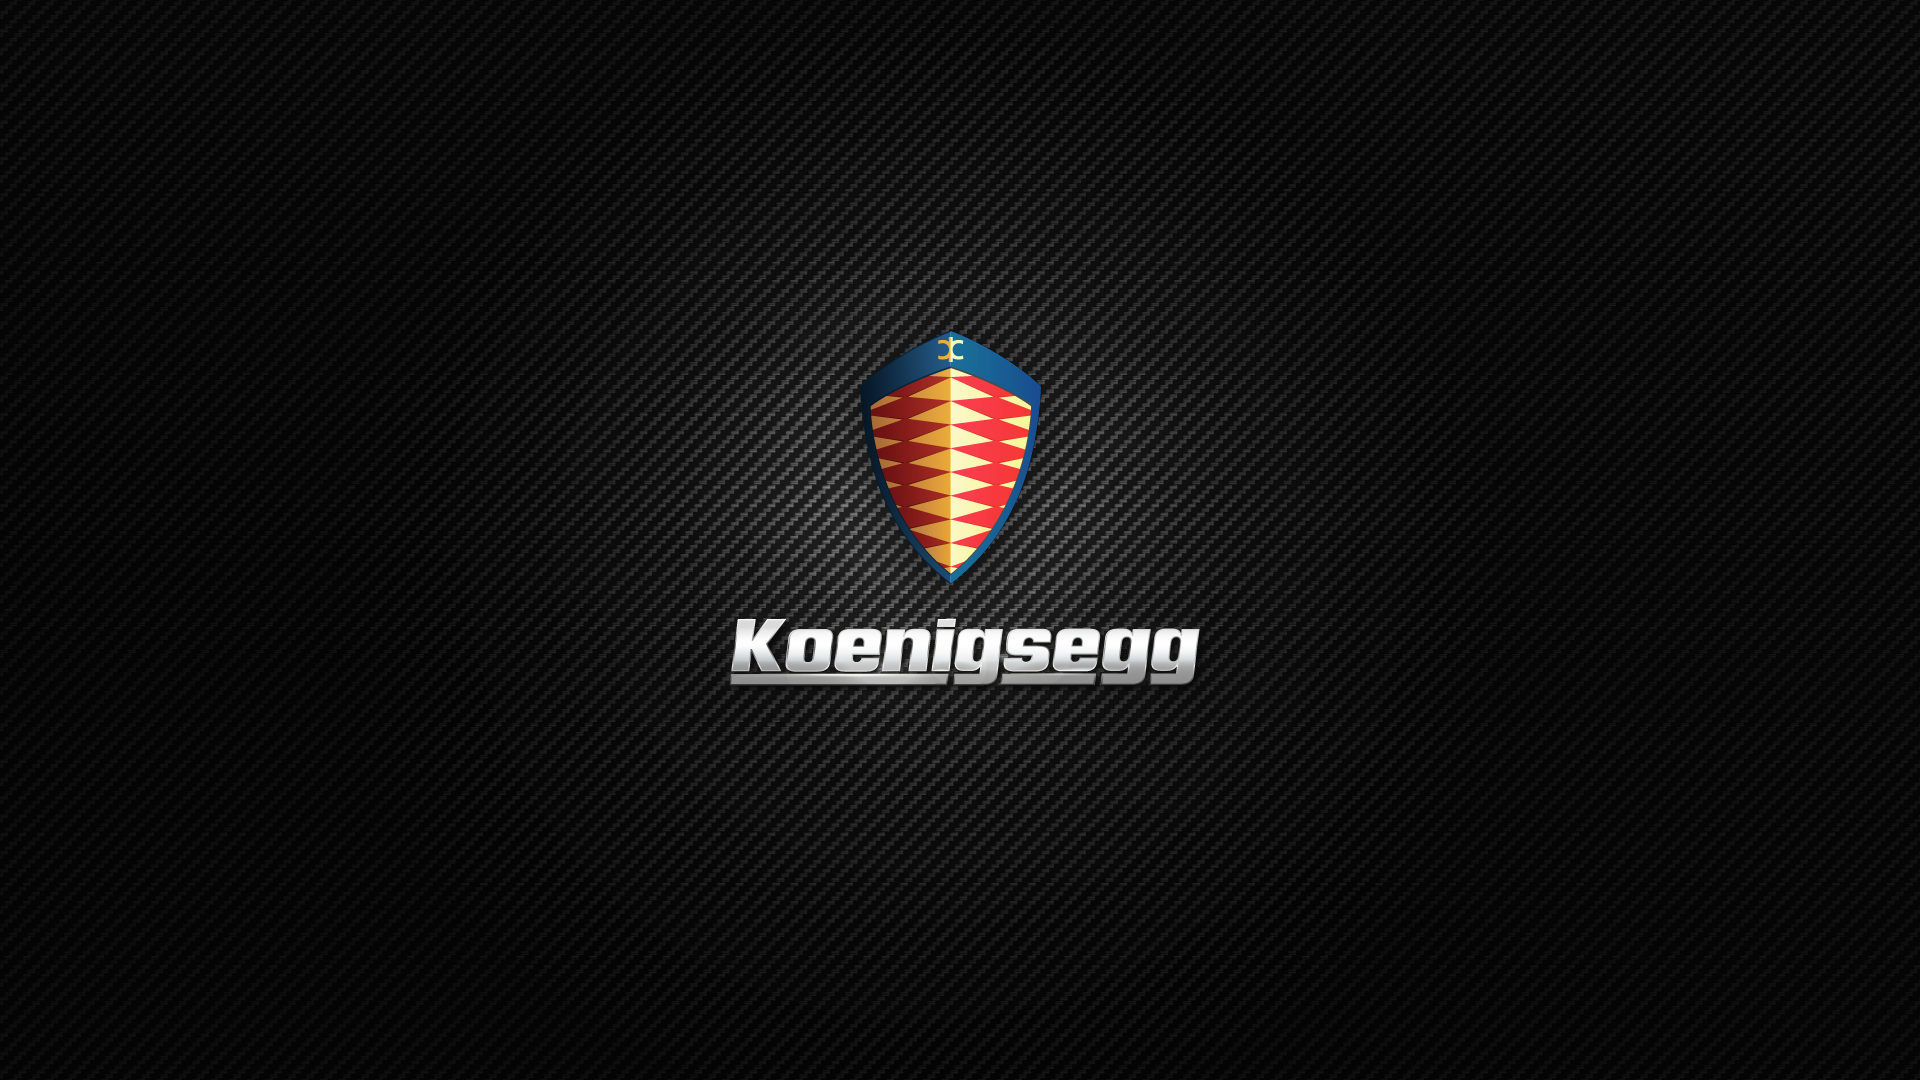 Koenigsegg Logo Wallpaper HD